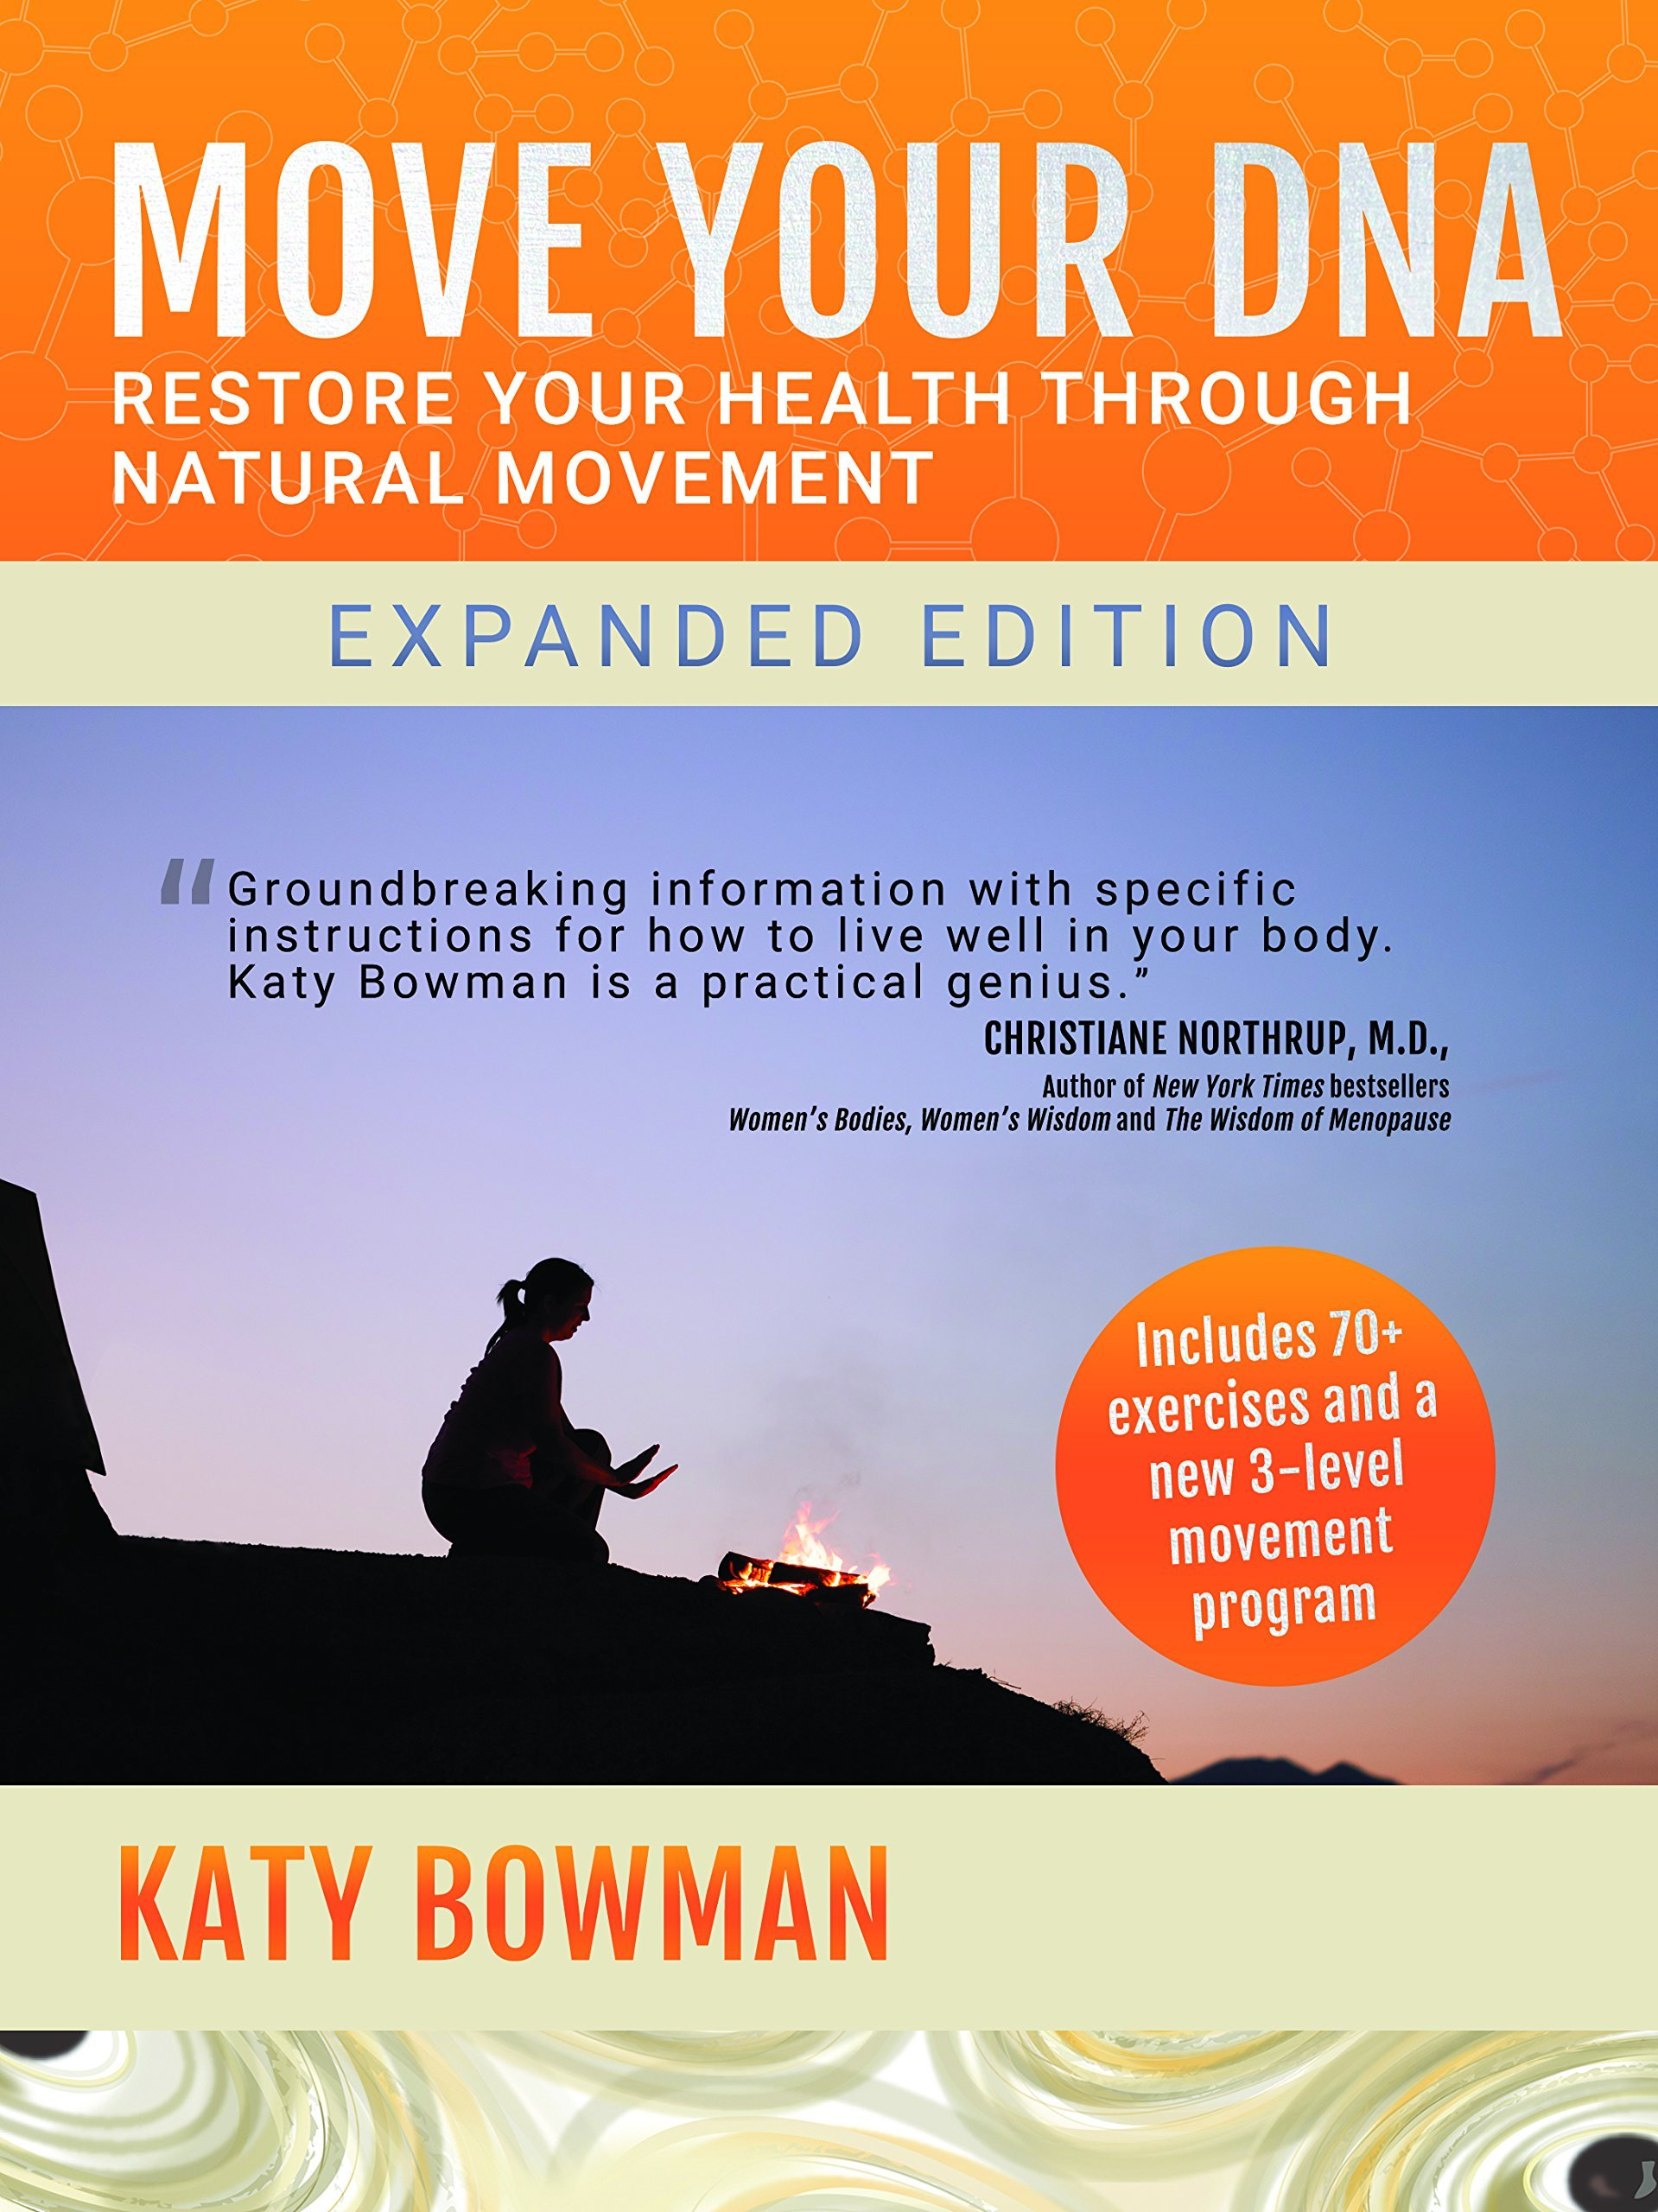 Move Your DNA: Restore Your Health Through Natural